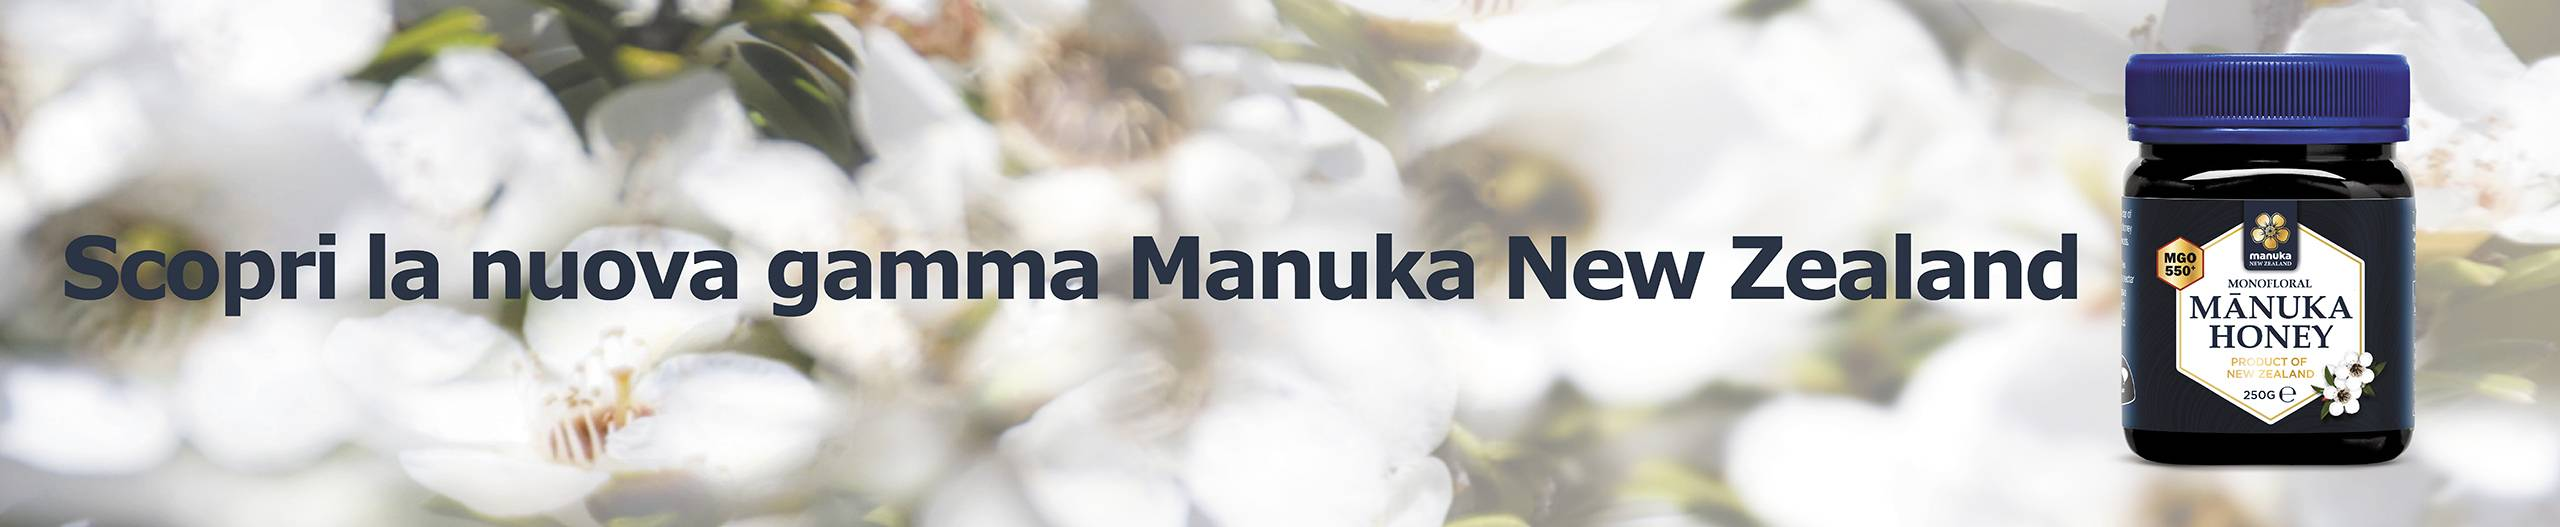 https://www.saluteinerba.com/brands/manuka-new-zealand/